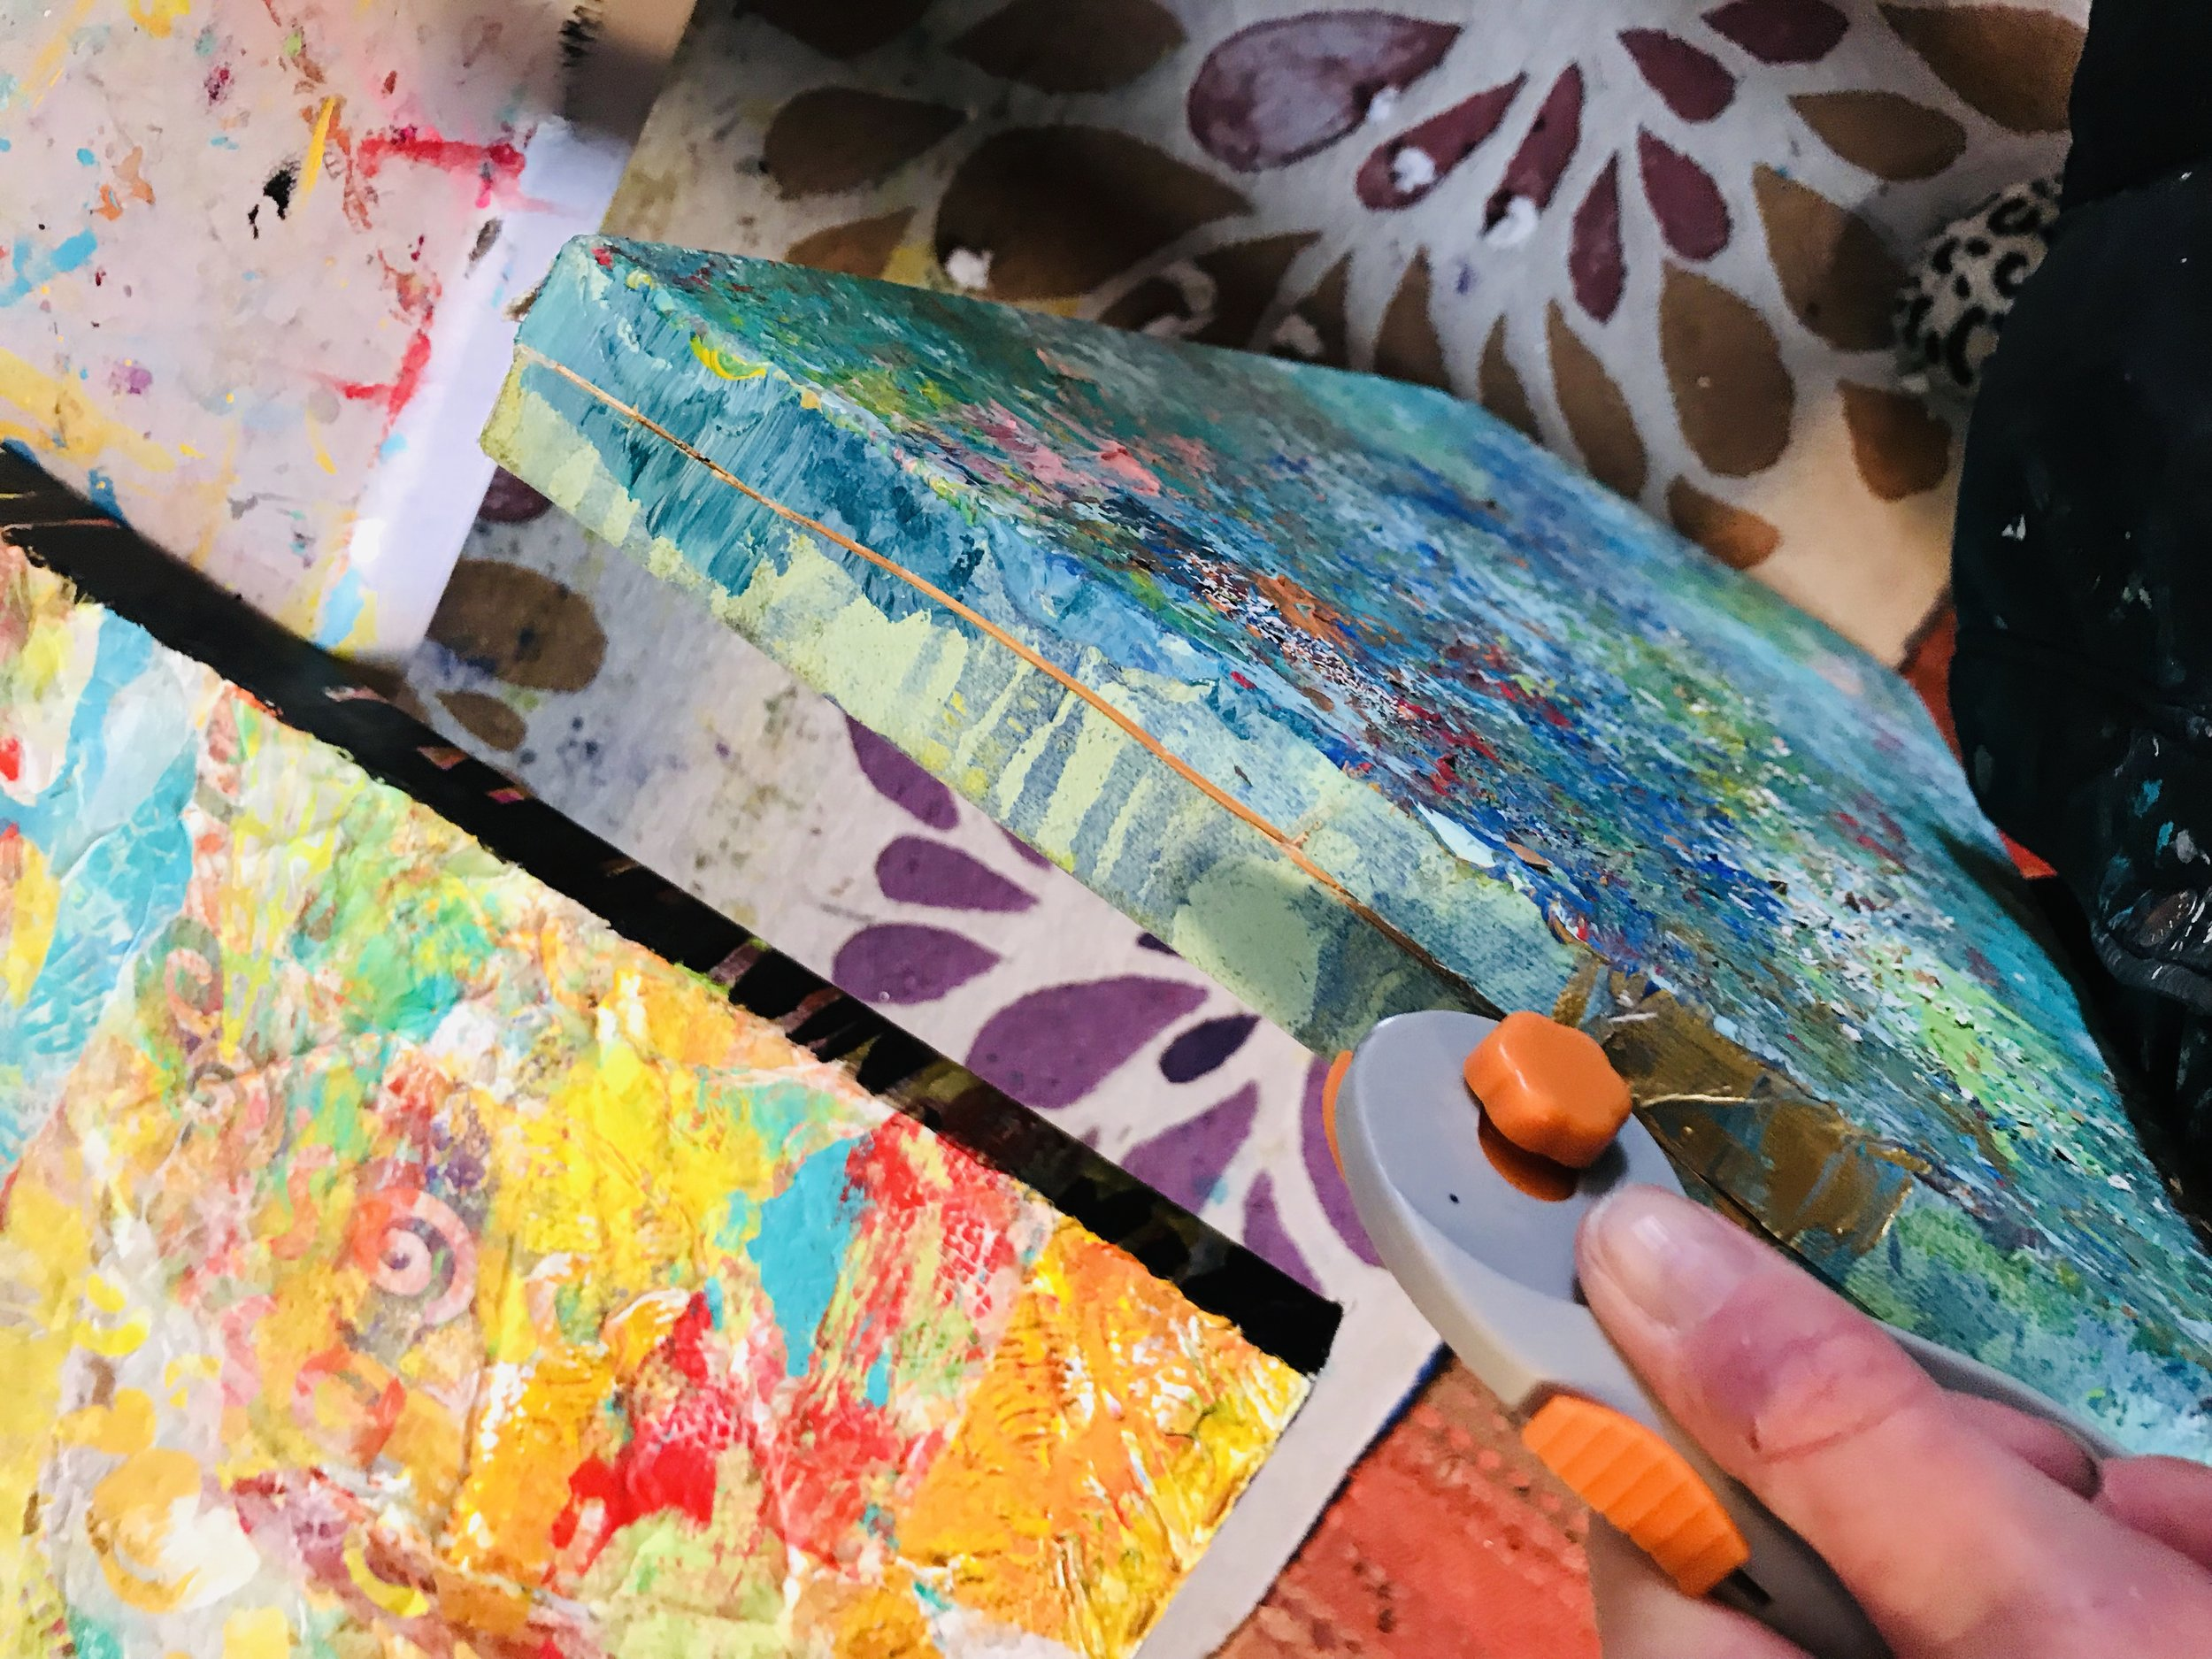 The joy of removing the canvas from its traditional setting -